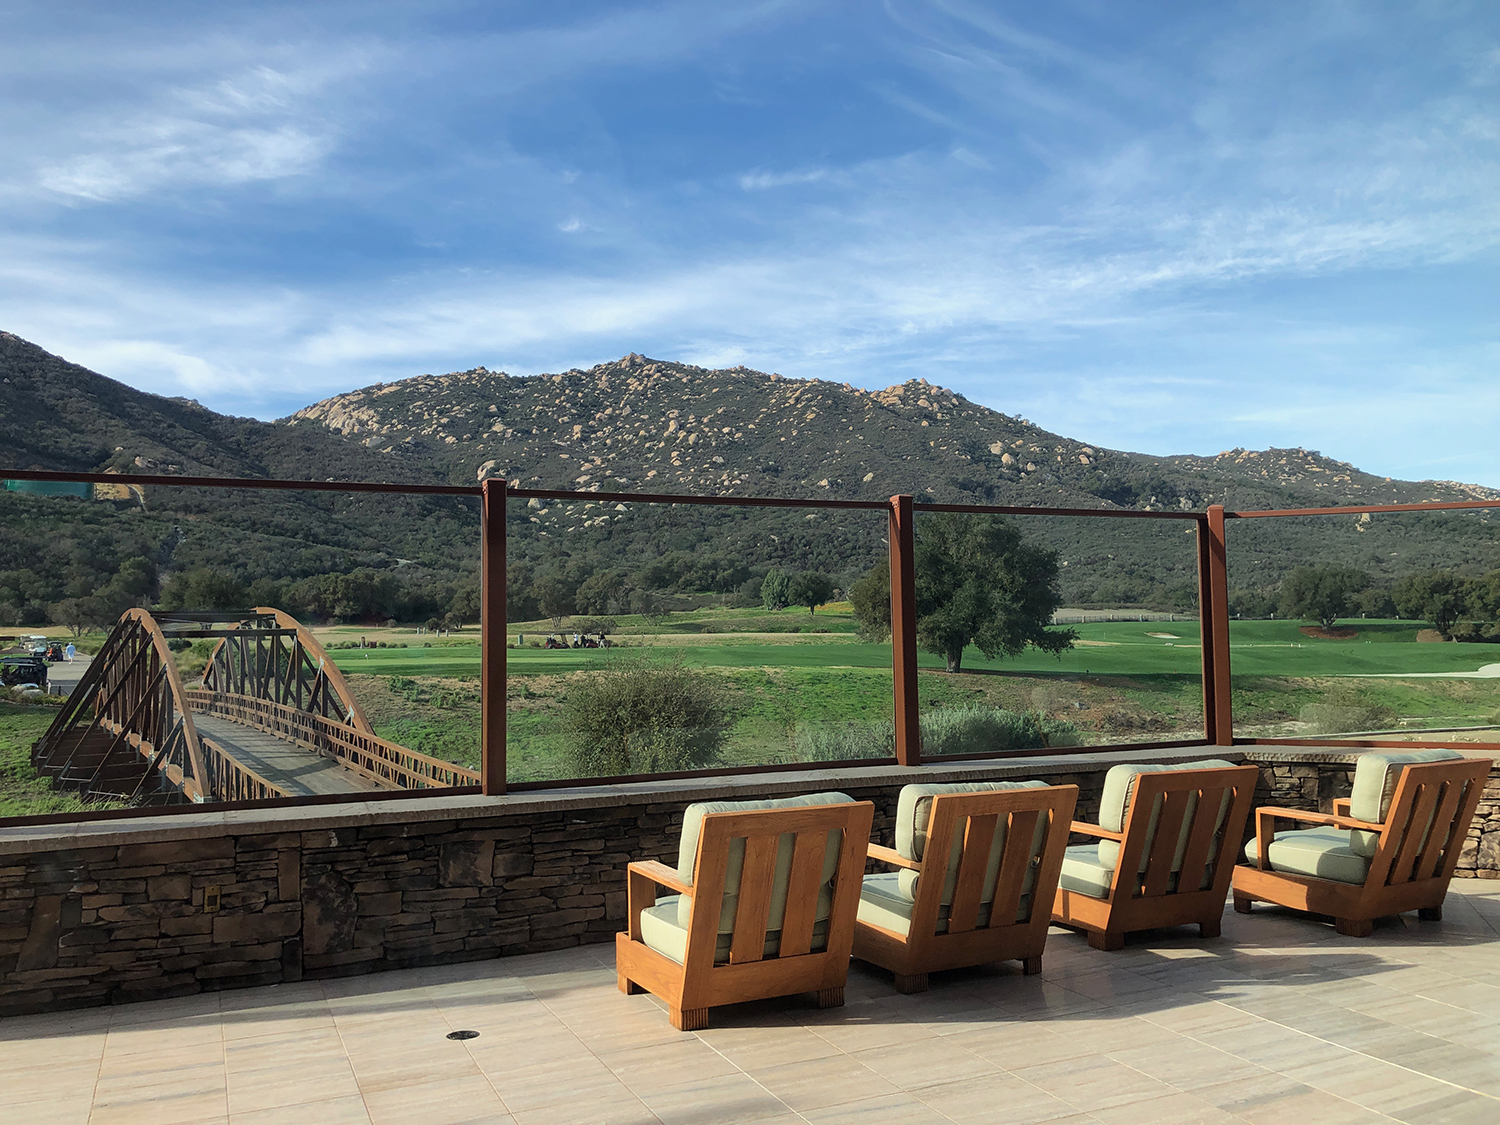 Journey's End has several outdoor decks with expansive views.